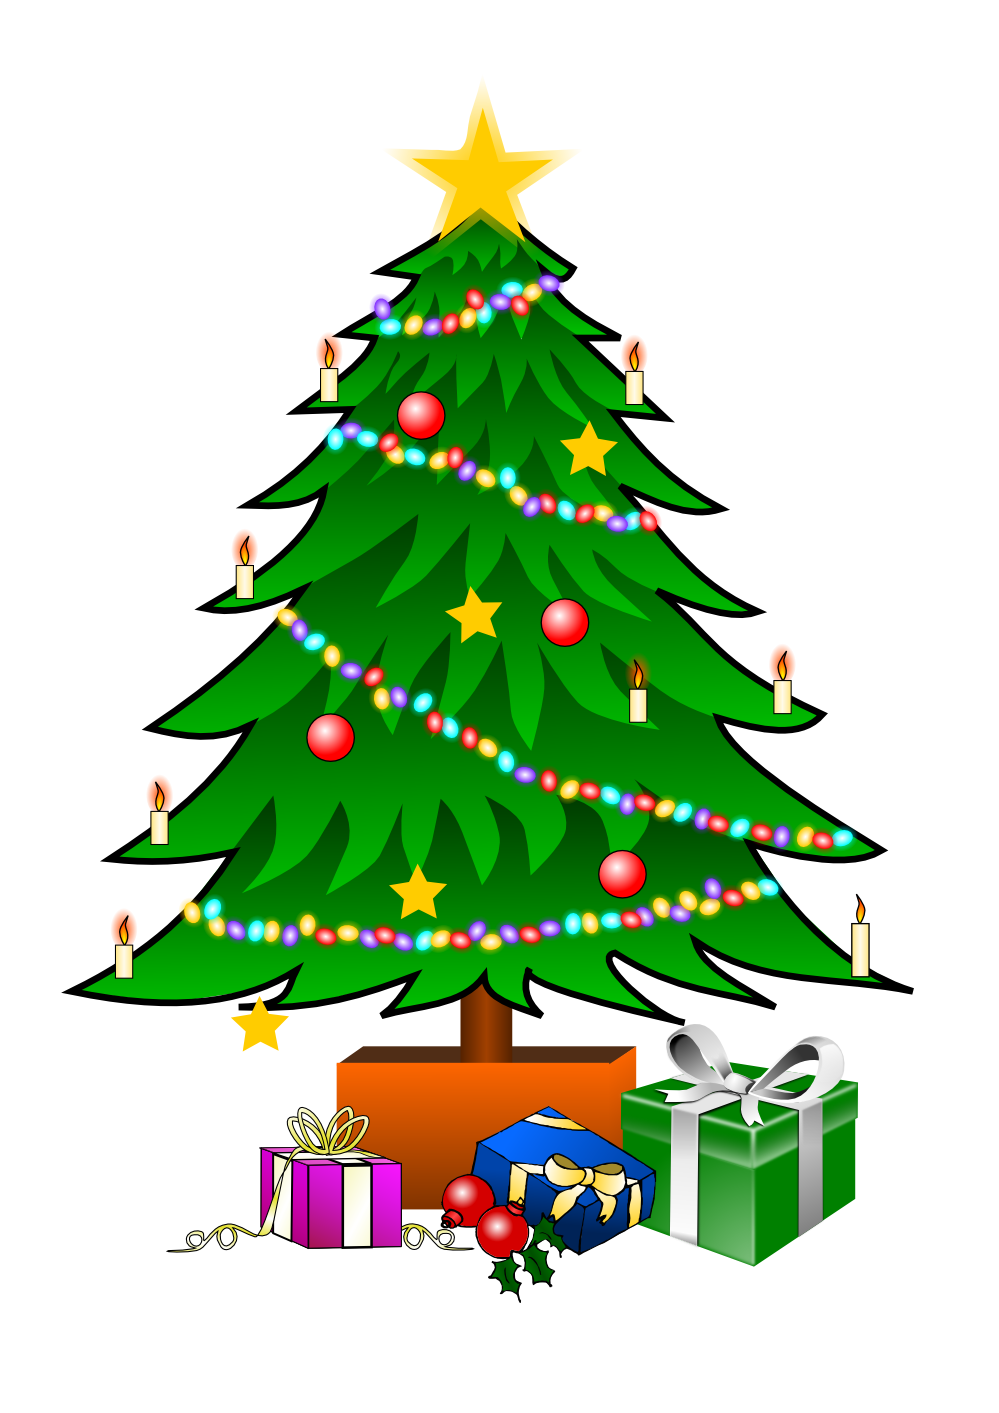 X mas clipart graphic freeuse stock Free Free Xmas Pictures, Download Free Clip Art, Free Clip ... graphic freeuse stock